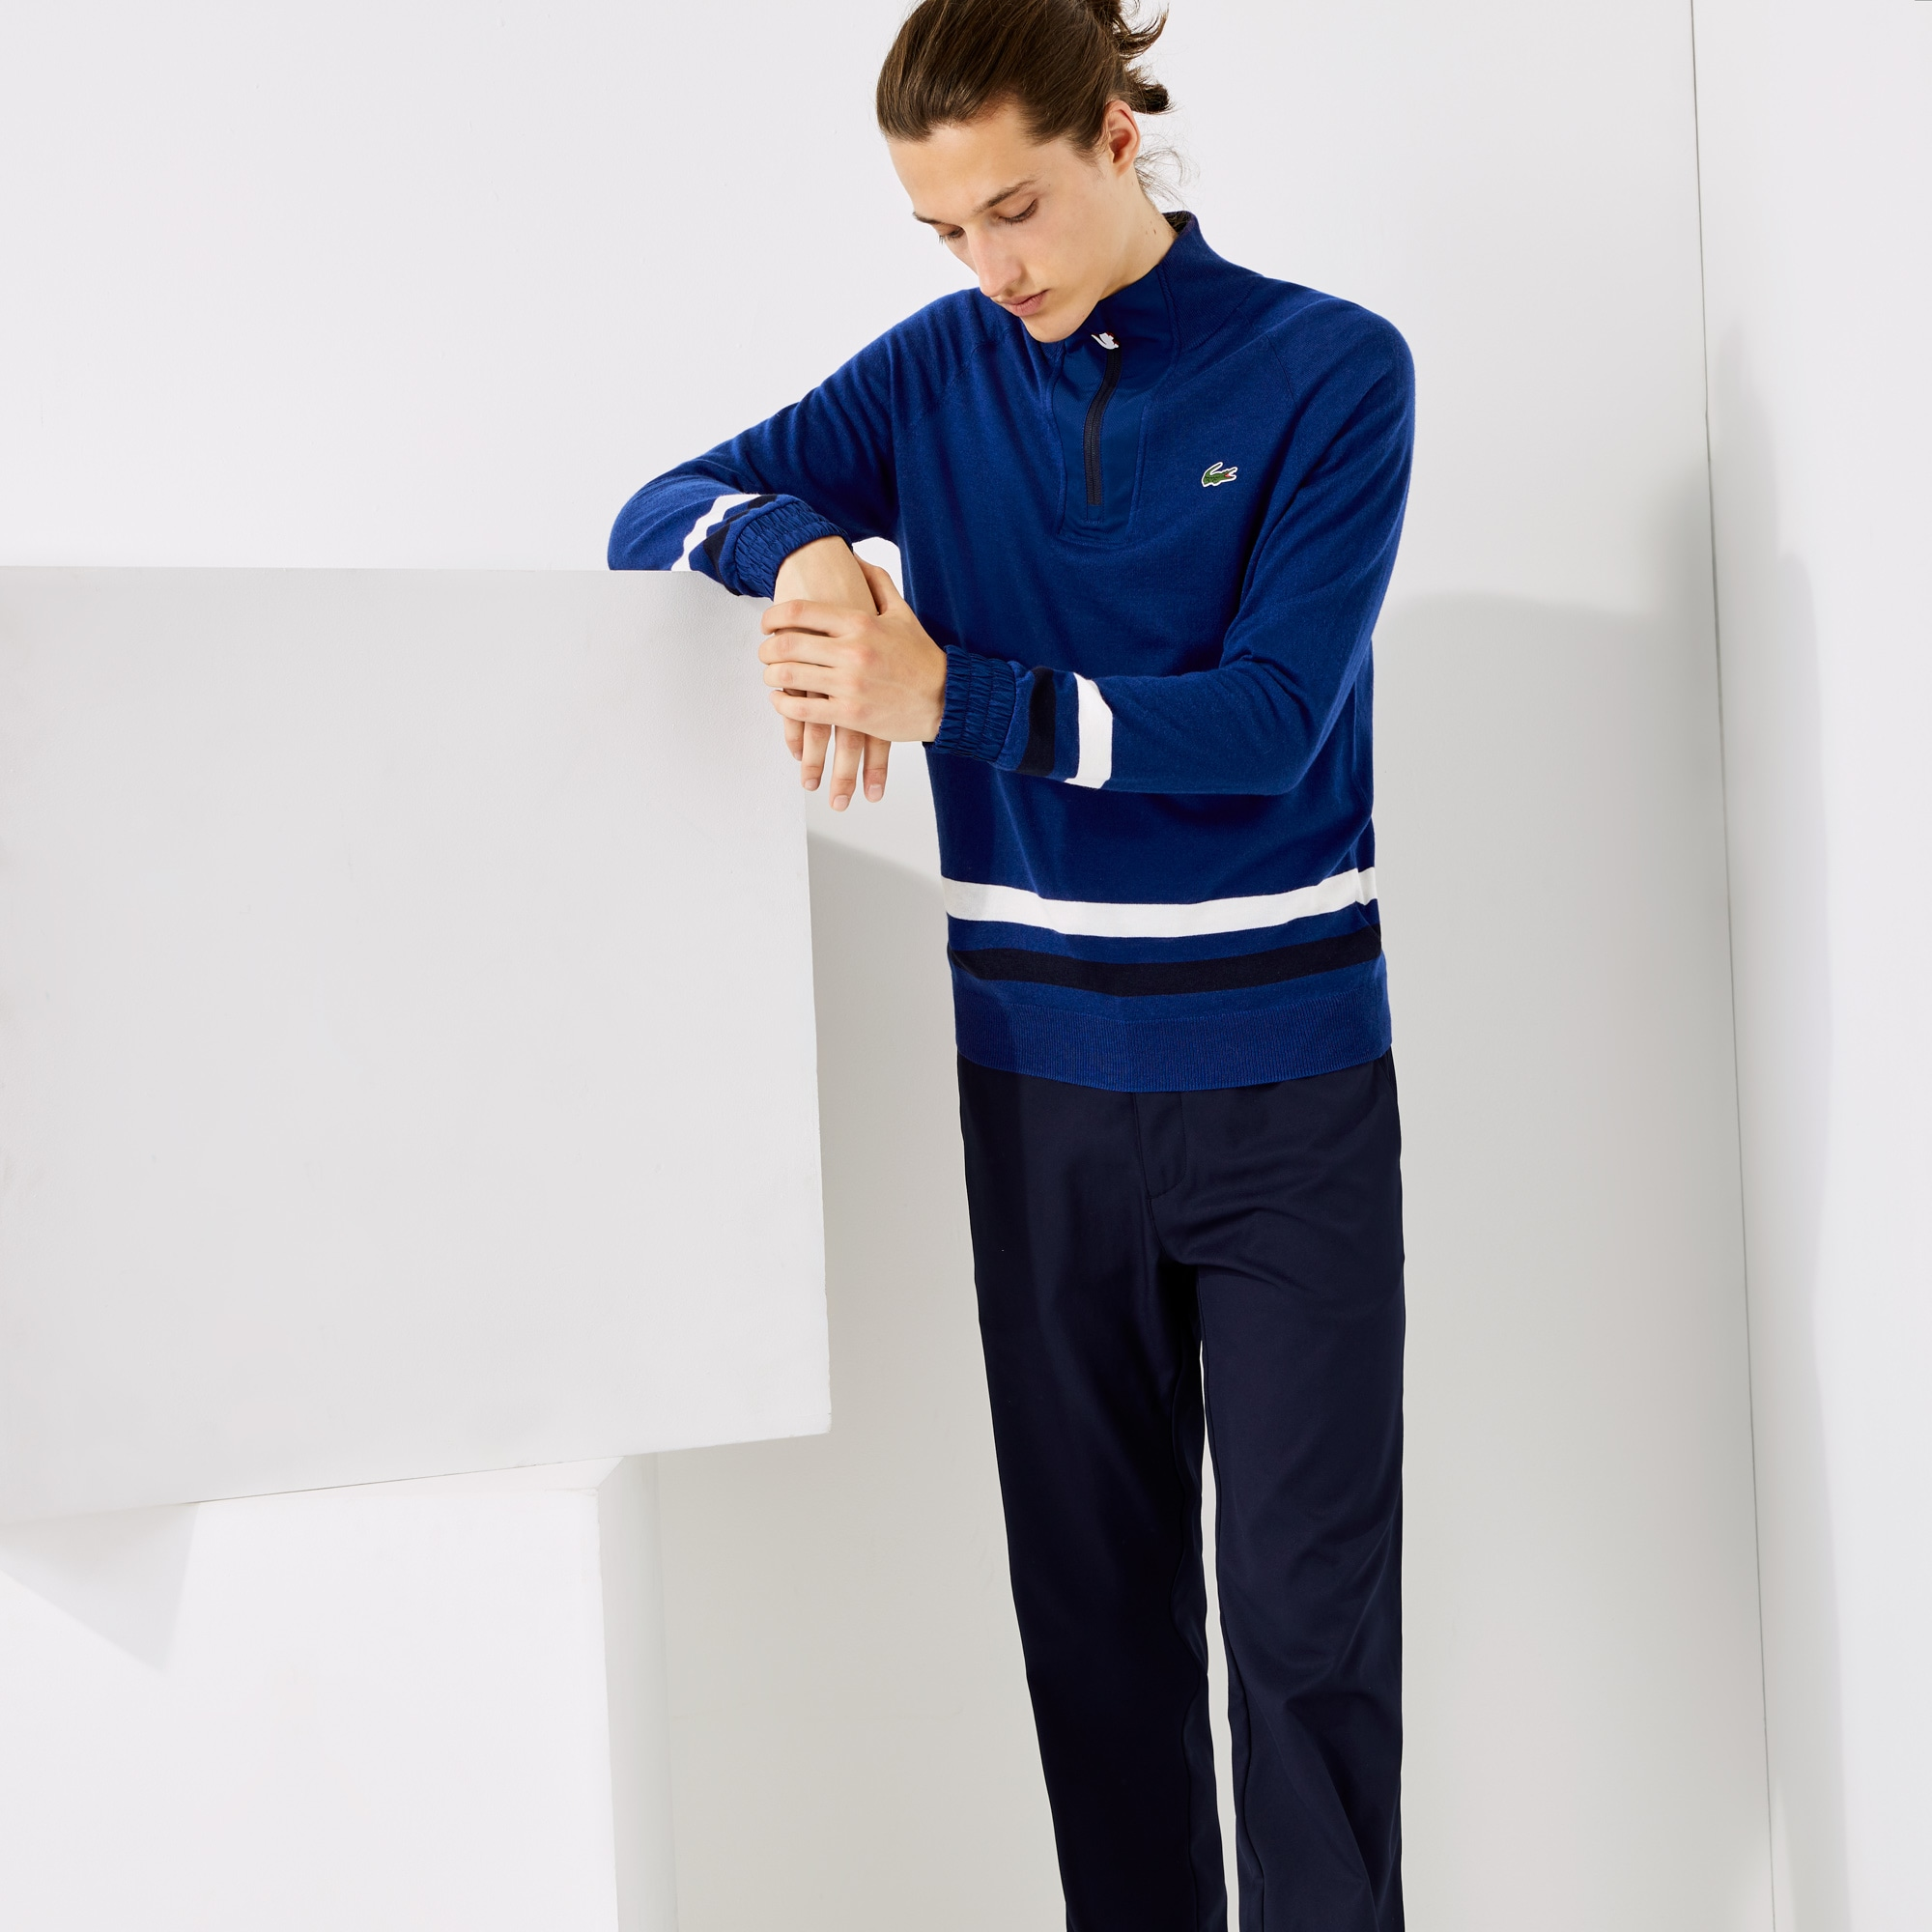 Lacoste Mens SPORT Breathable Wool Golf Sweater